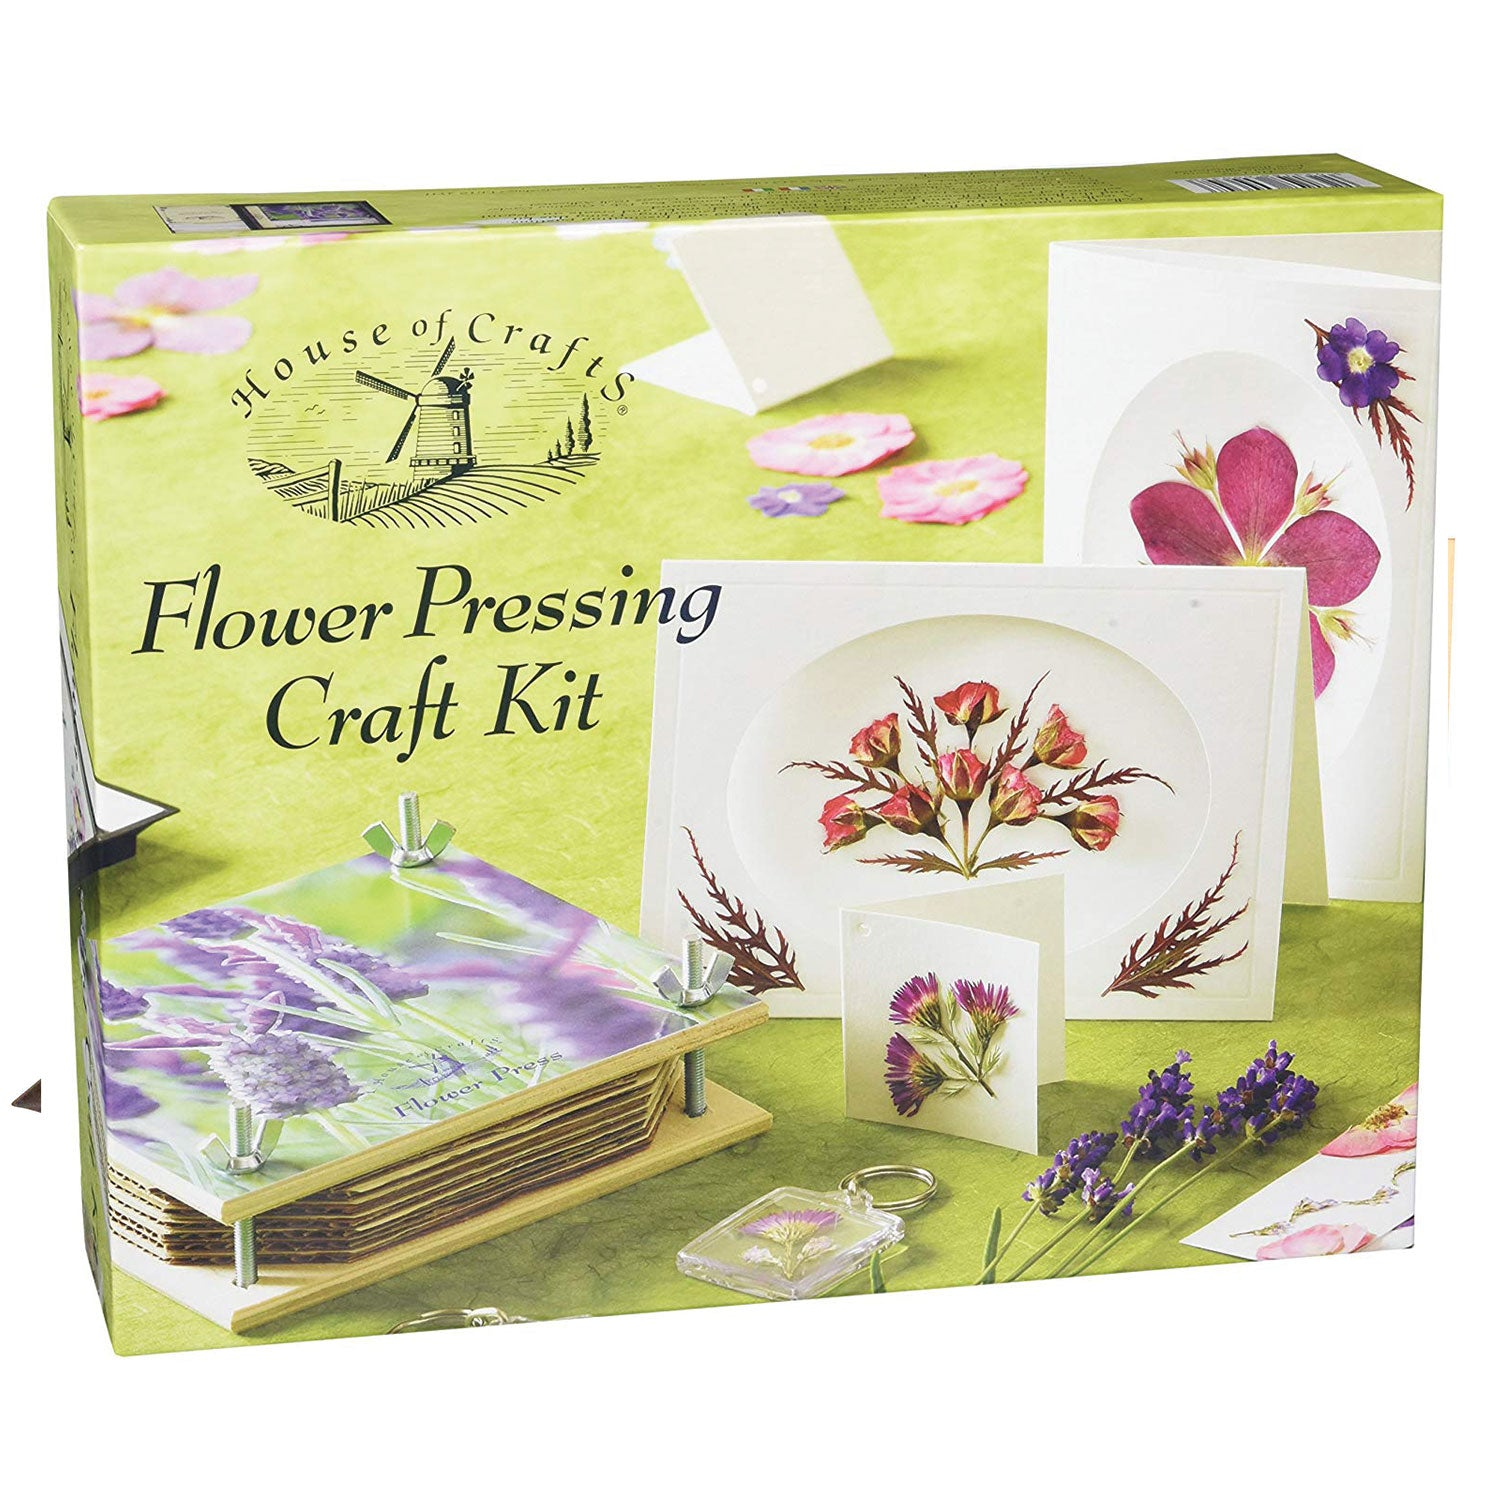 House of Crafts Flower Press Kit